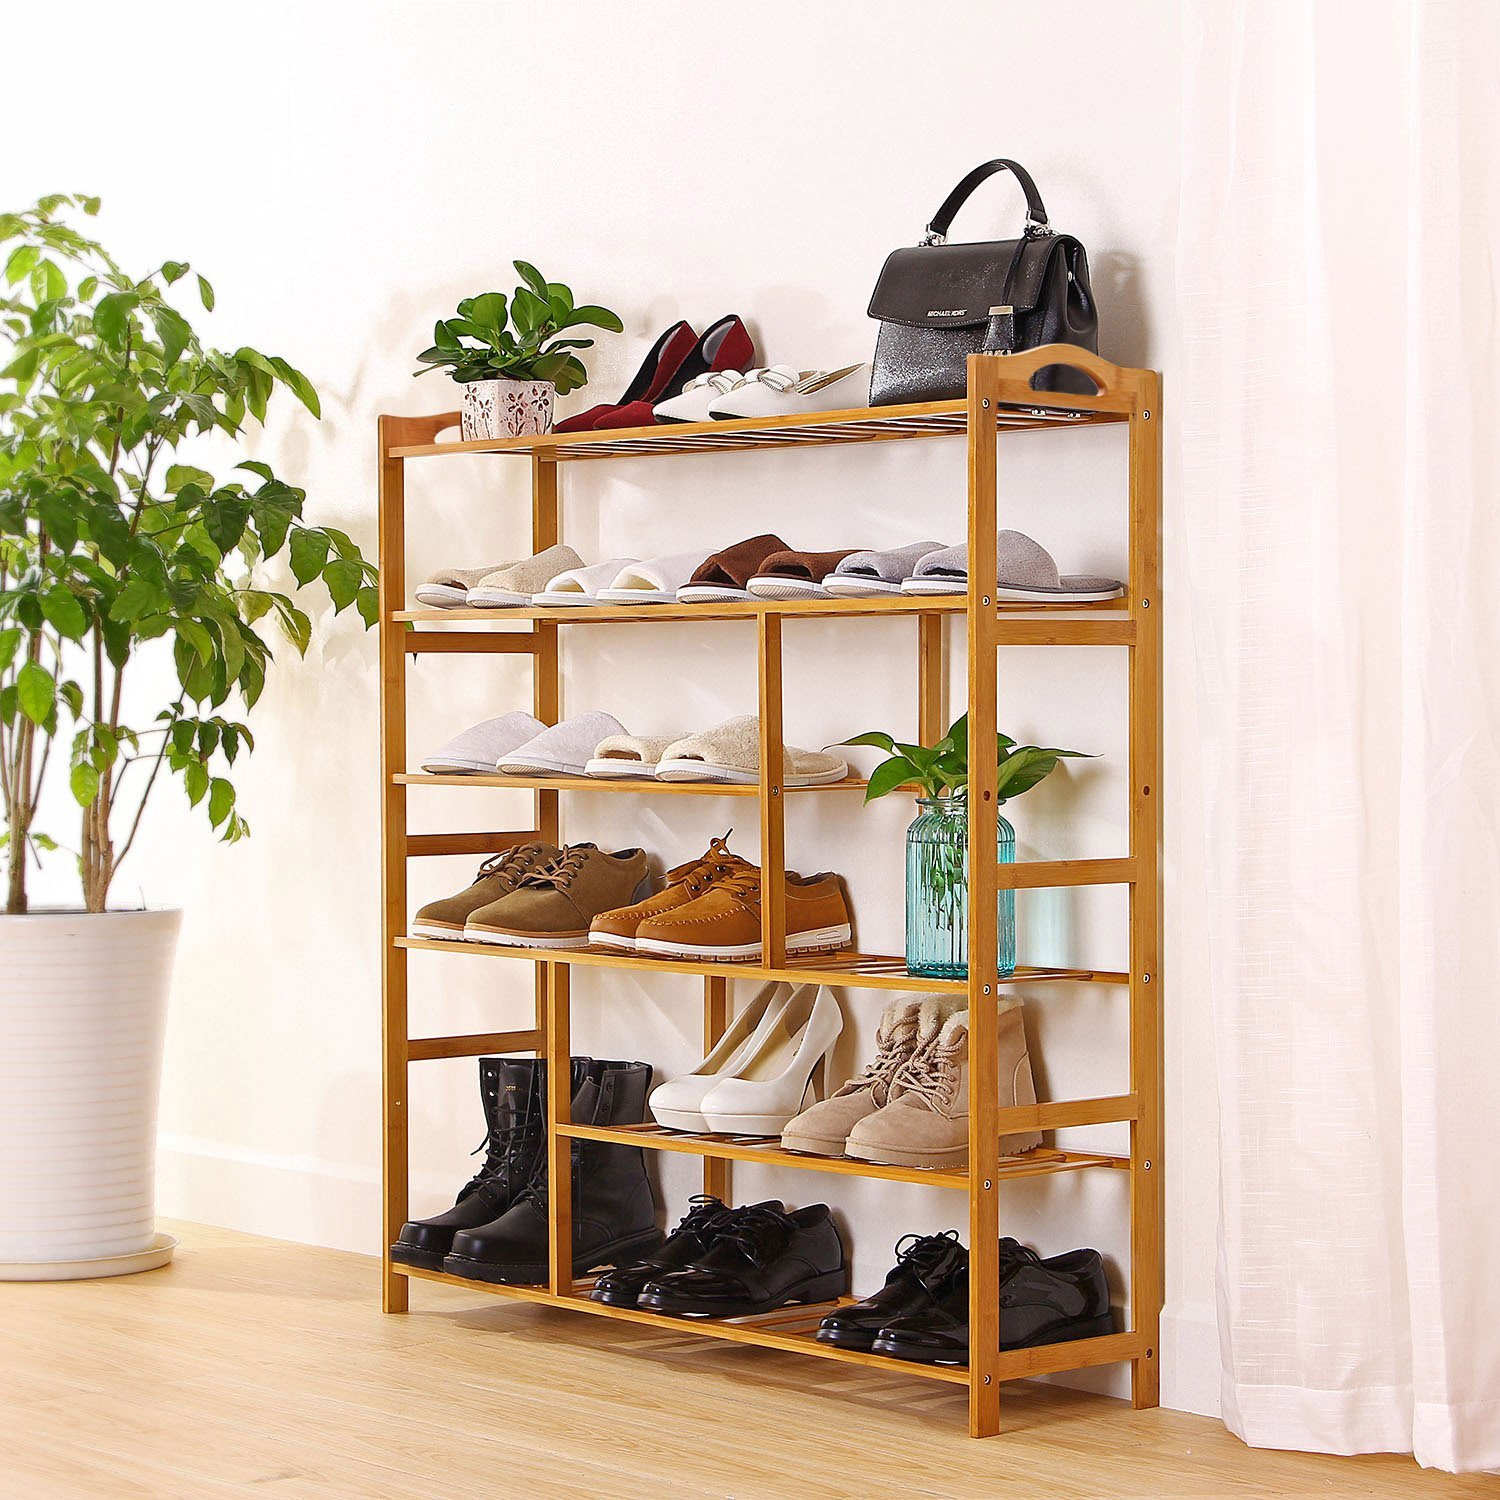 Details About 4 5 6 Tier Shoe Storage Rack Natural Bamboo Shelves Bamboo  Organizer Shoe Rack